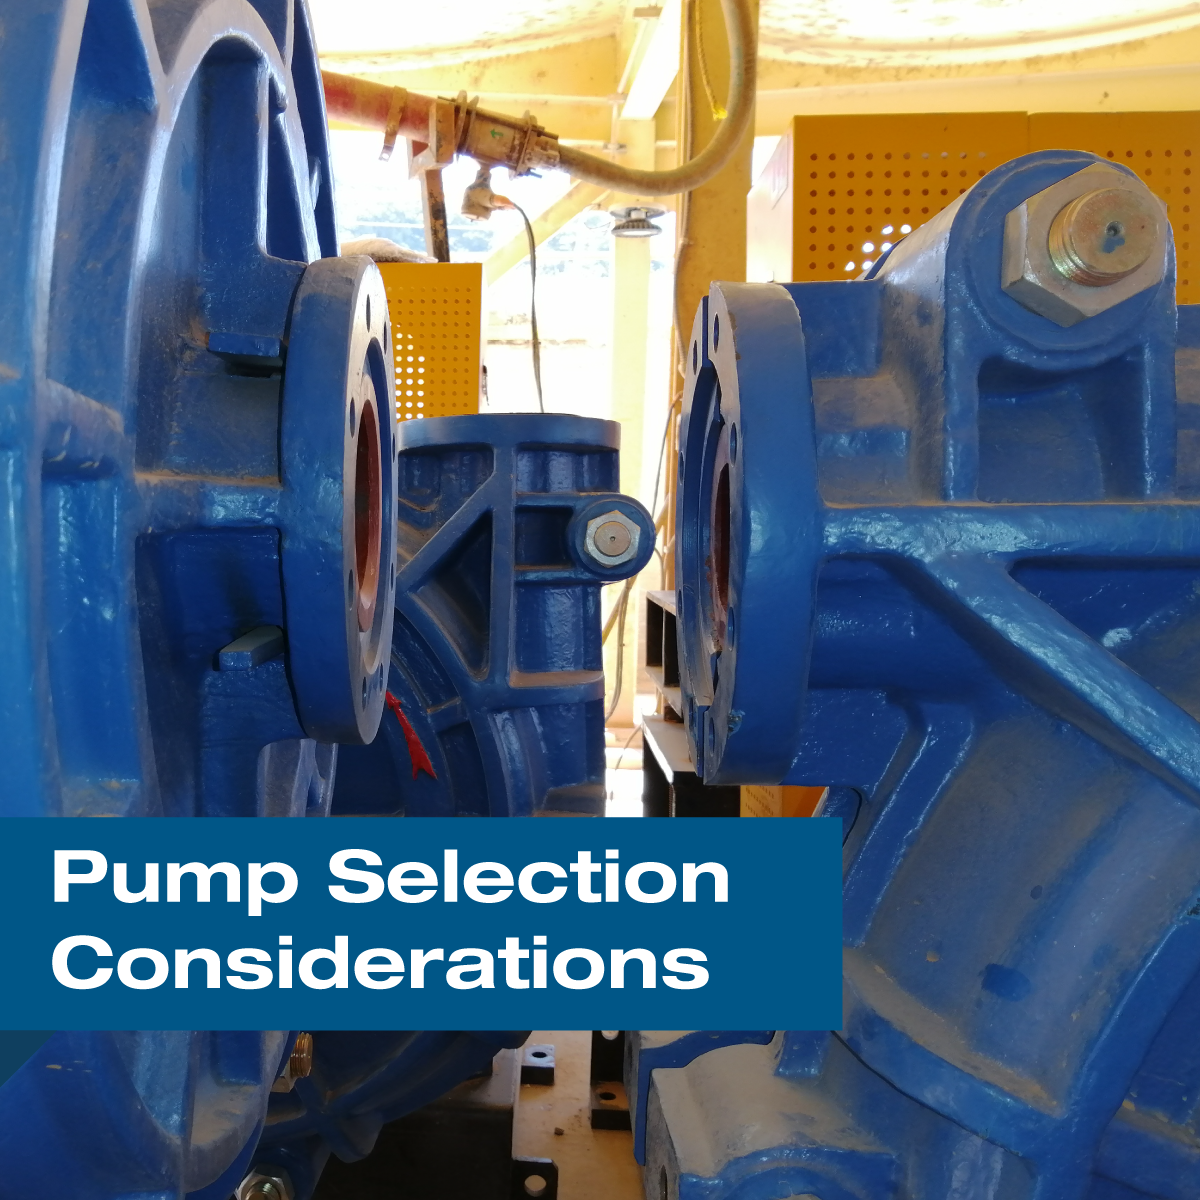 Pump Selection Considerations for Reducing Energy Consumption